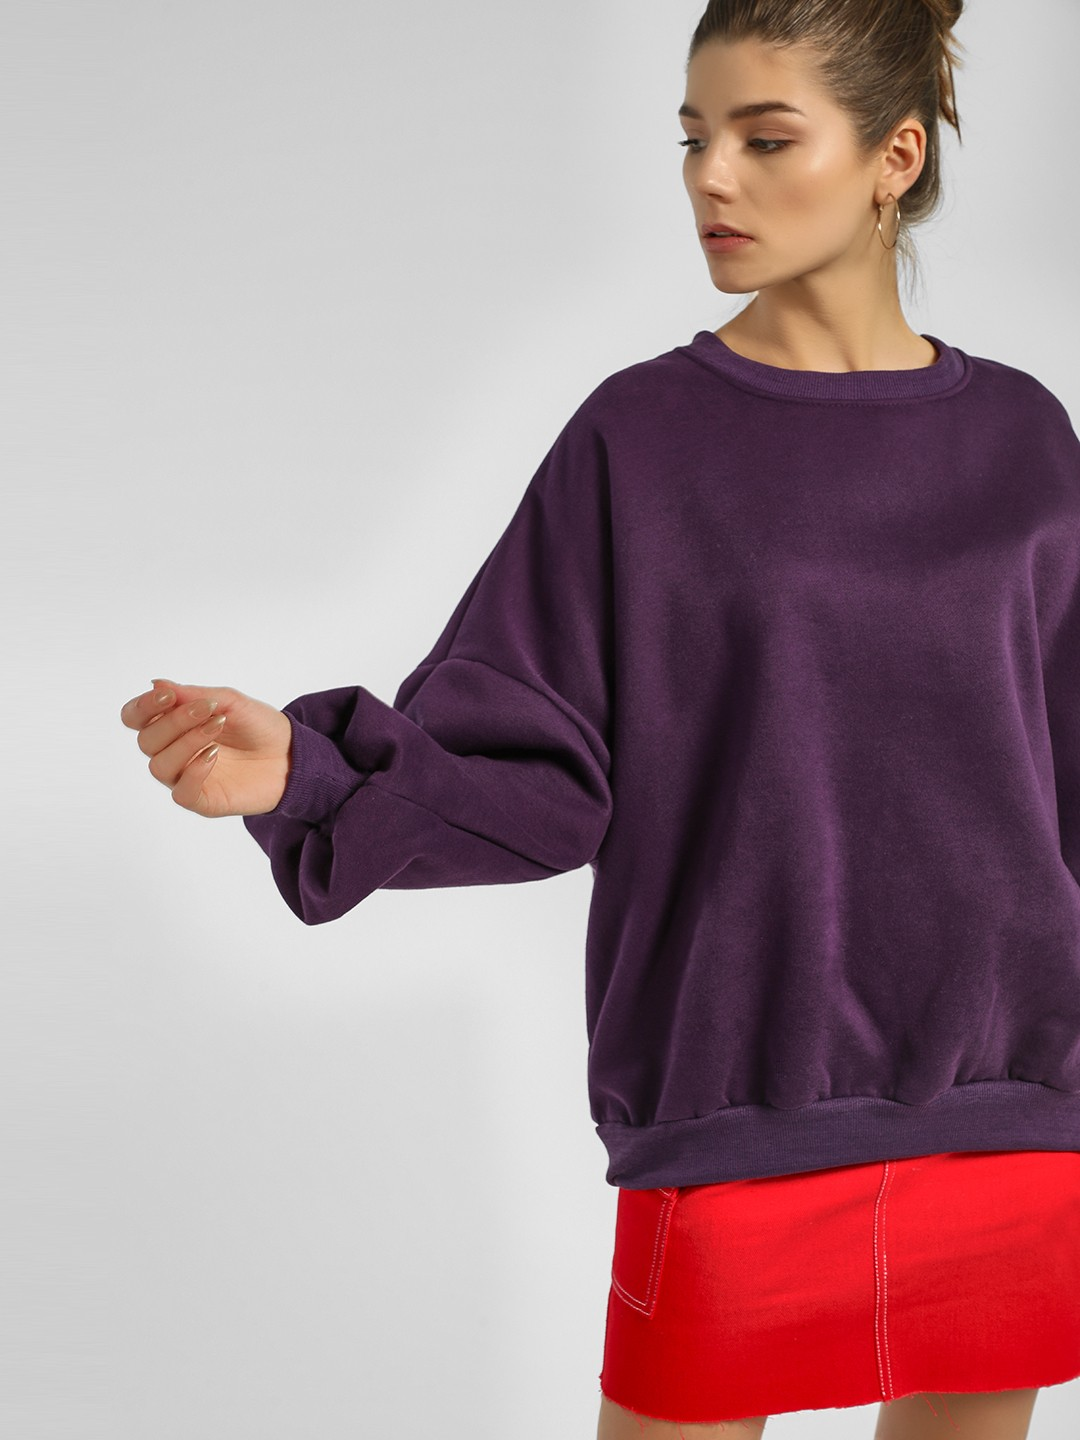 Origami Lily Purple Drop Shoulder Oversized Sweatshirt 1